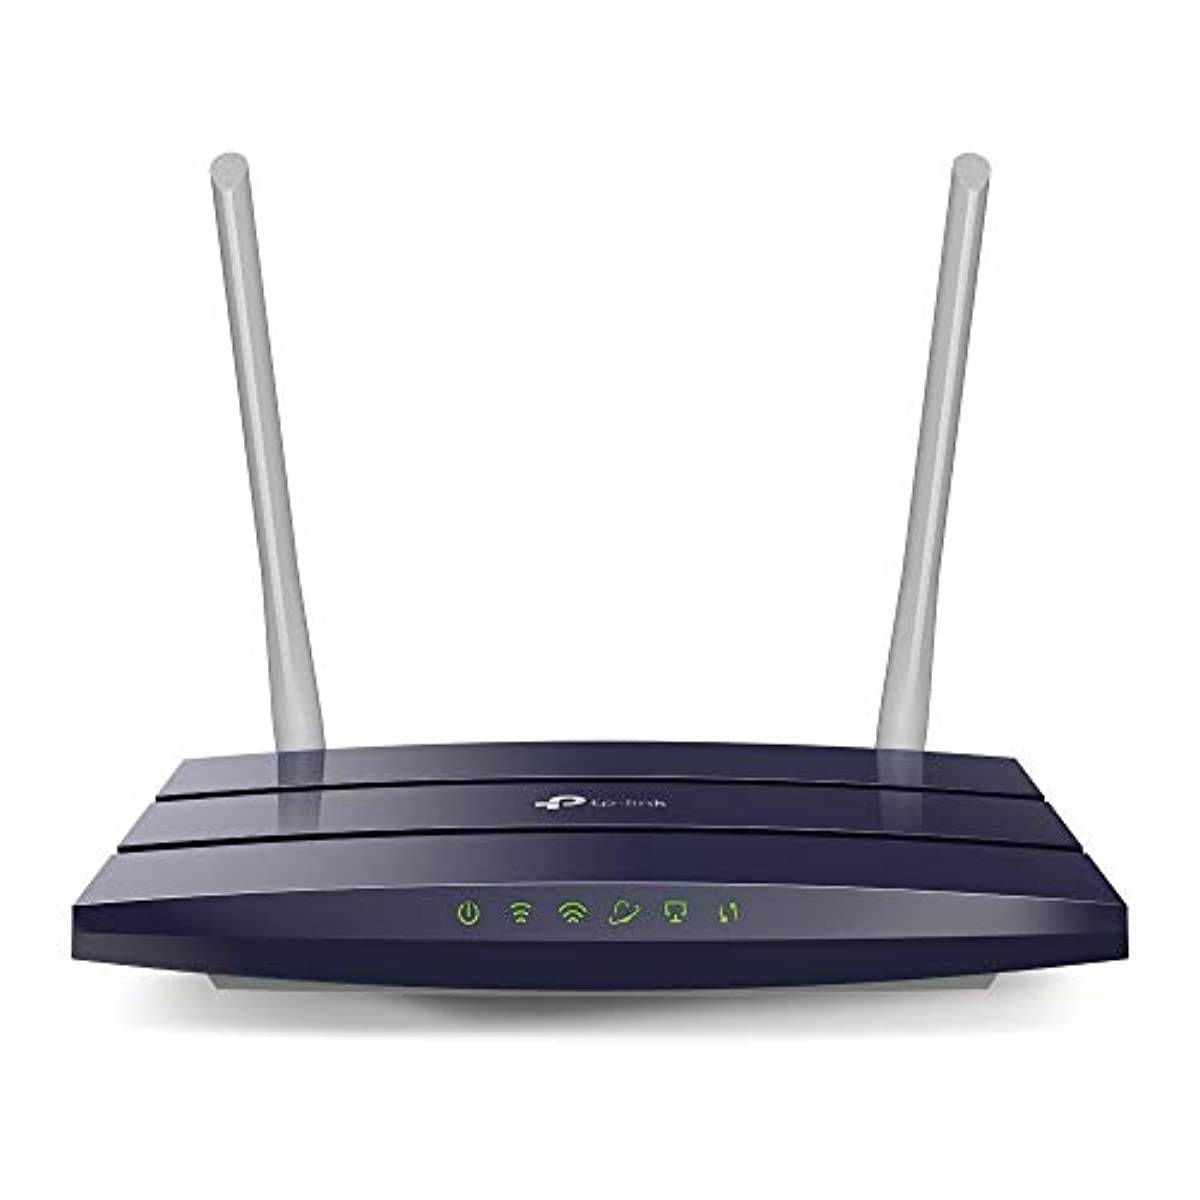 TP-Link AC1200 WiFi Router Dual Band Wireless Router 4 x 10/100 Mbps Fast Ethernet Ports, Access Point Mode Archer A5 TP-Link